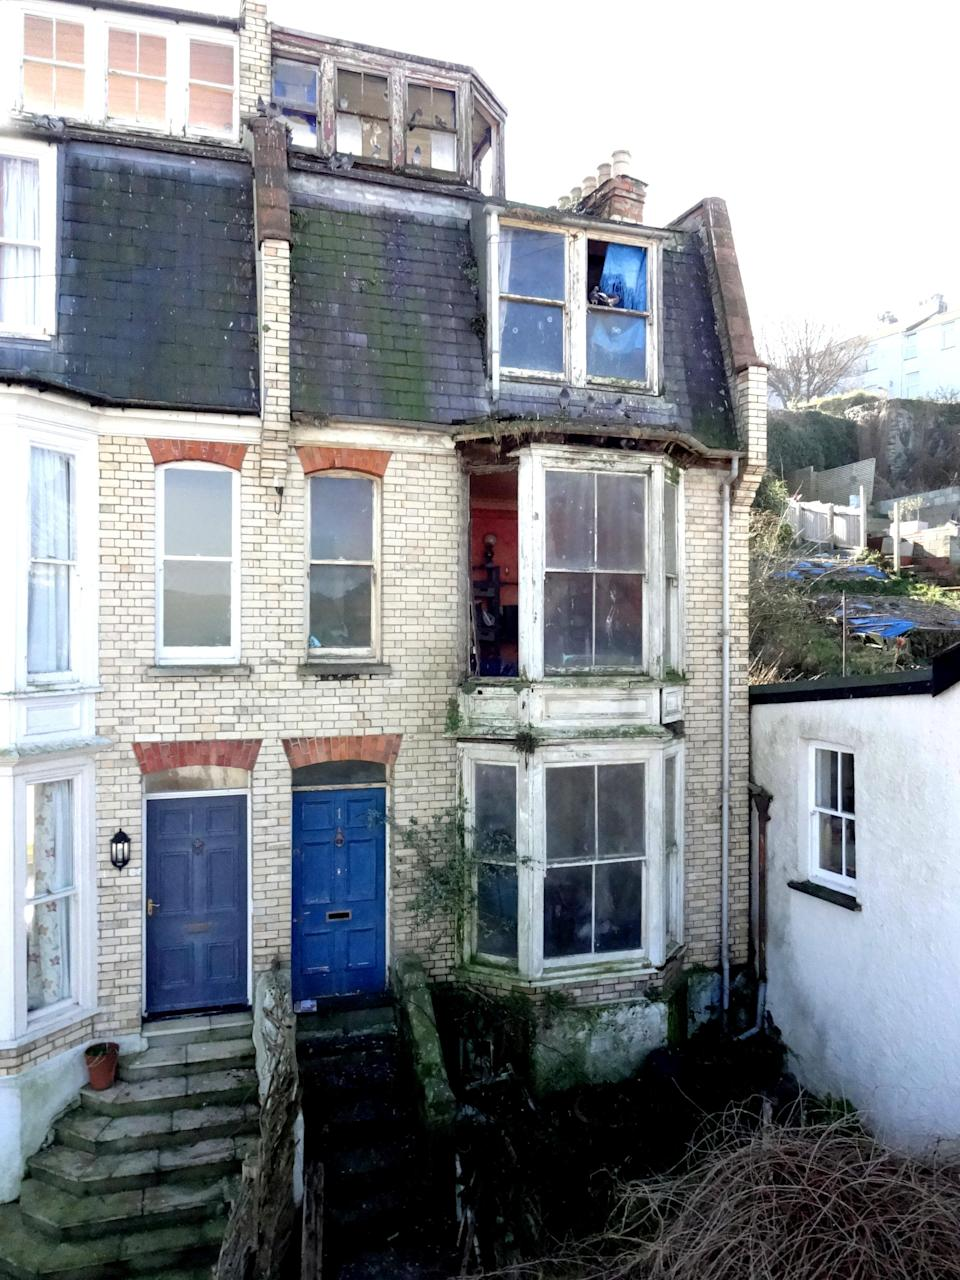 The exterior of the house is also in a less than desirable state but that didn't put bidders off as the price was driven to £100,000. (SWNS)